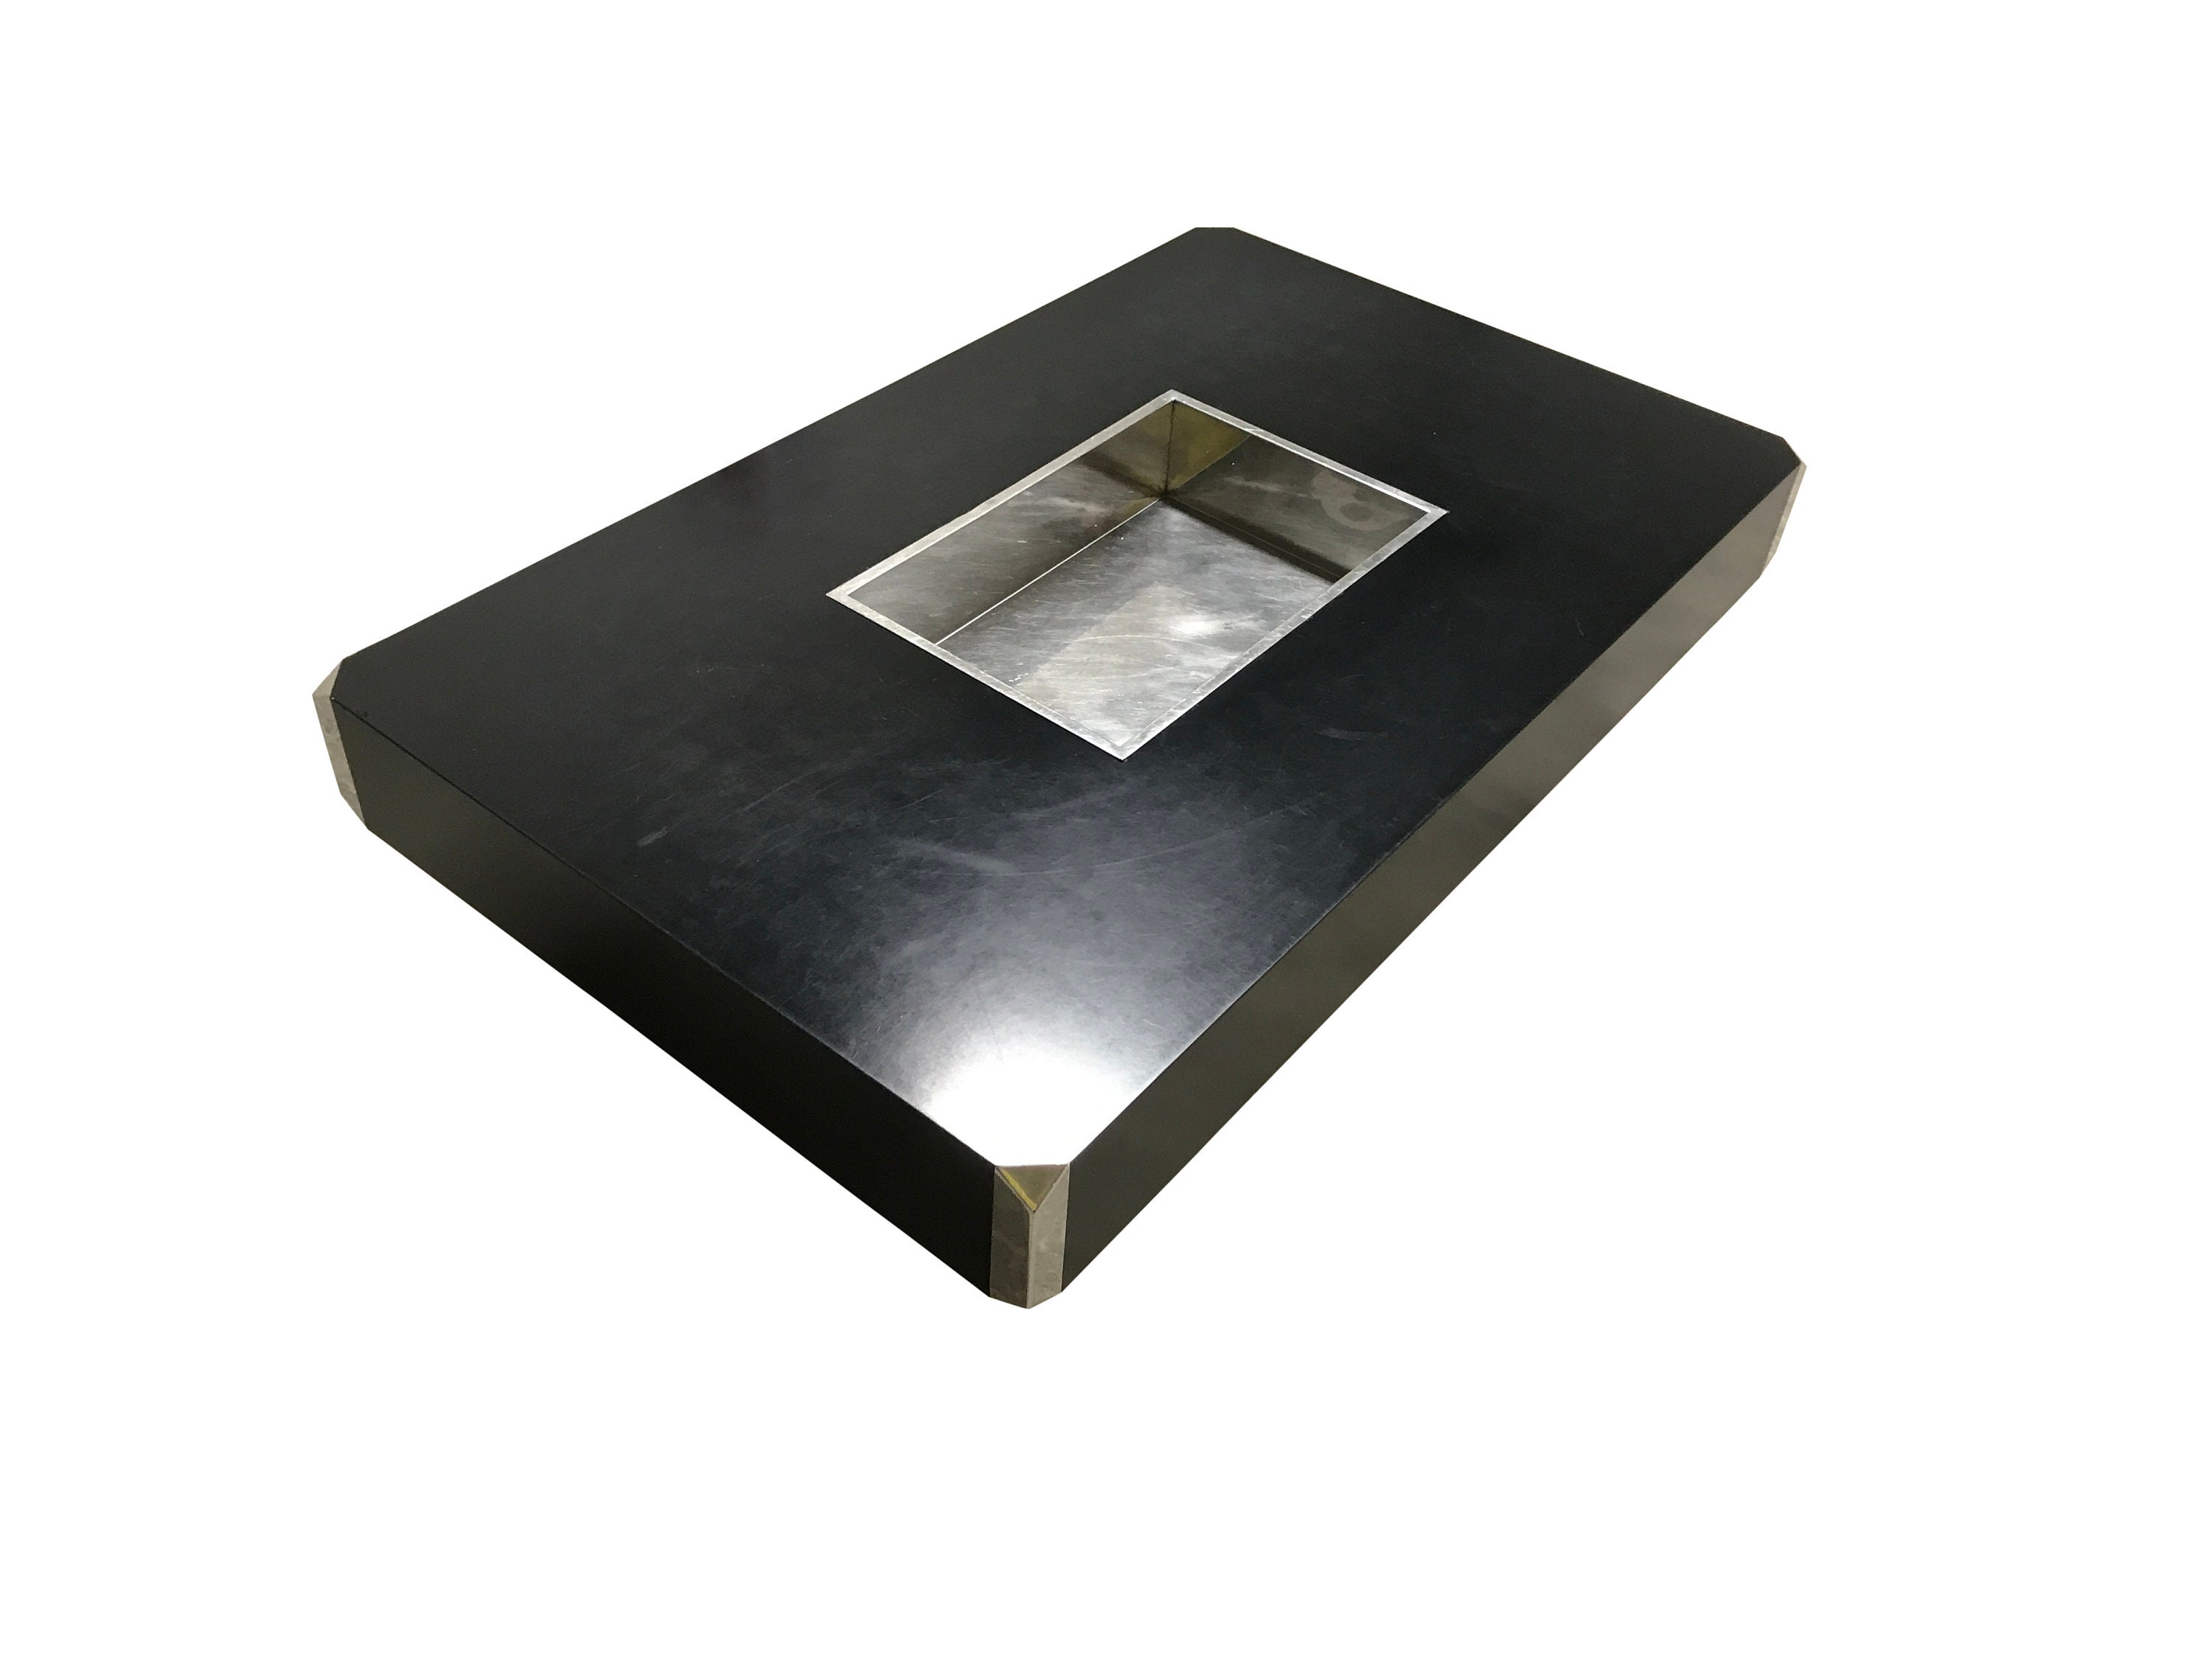 Willy Rizzo Coffee Table.Black Alveo Coffee Table By Willy Rizzo 1970s Willy Rizzo Coffee Table Hollywood Regency Coffee Table Vintage Coffee Table